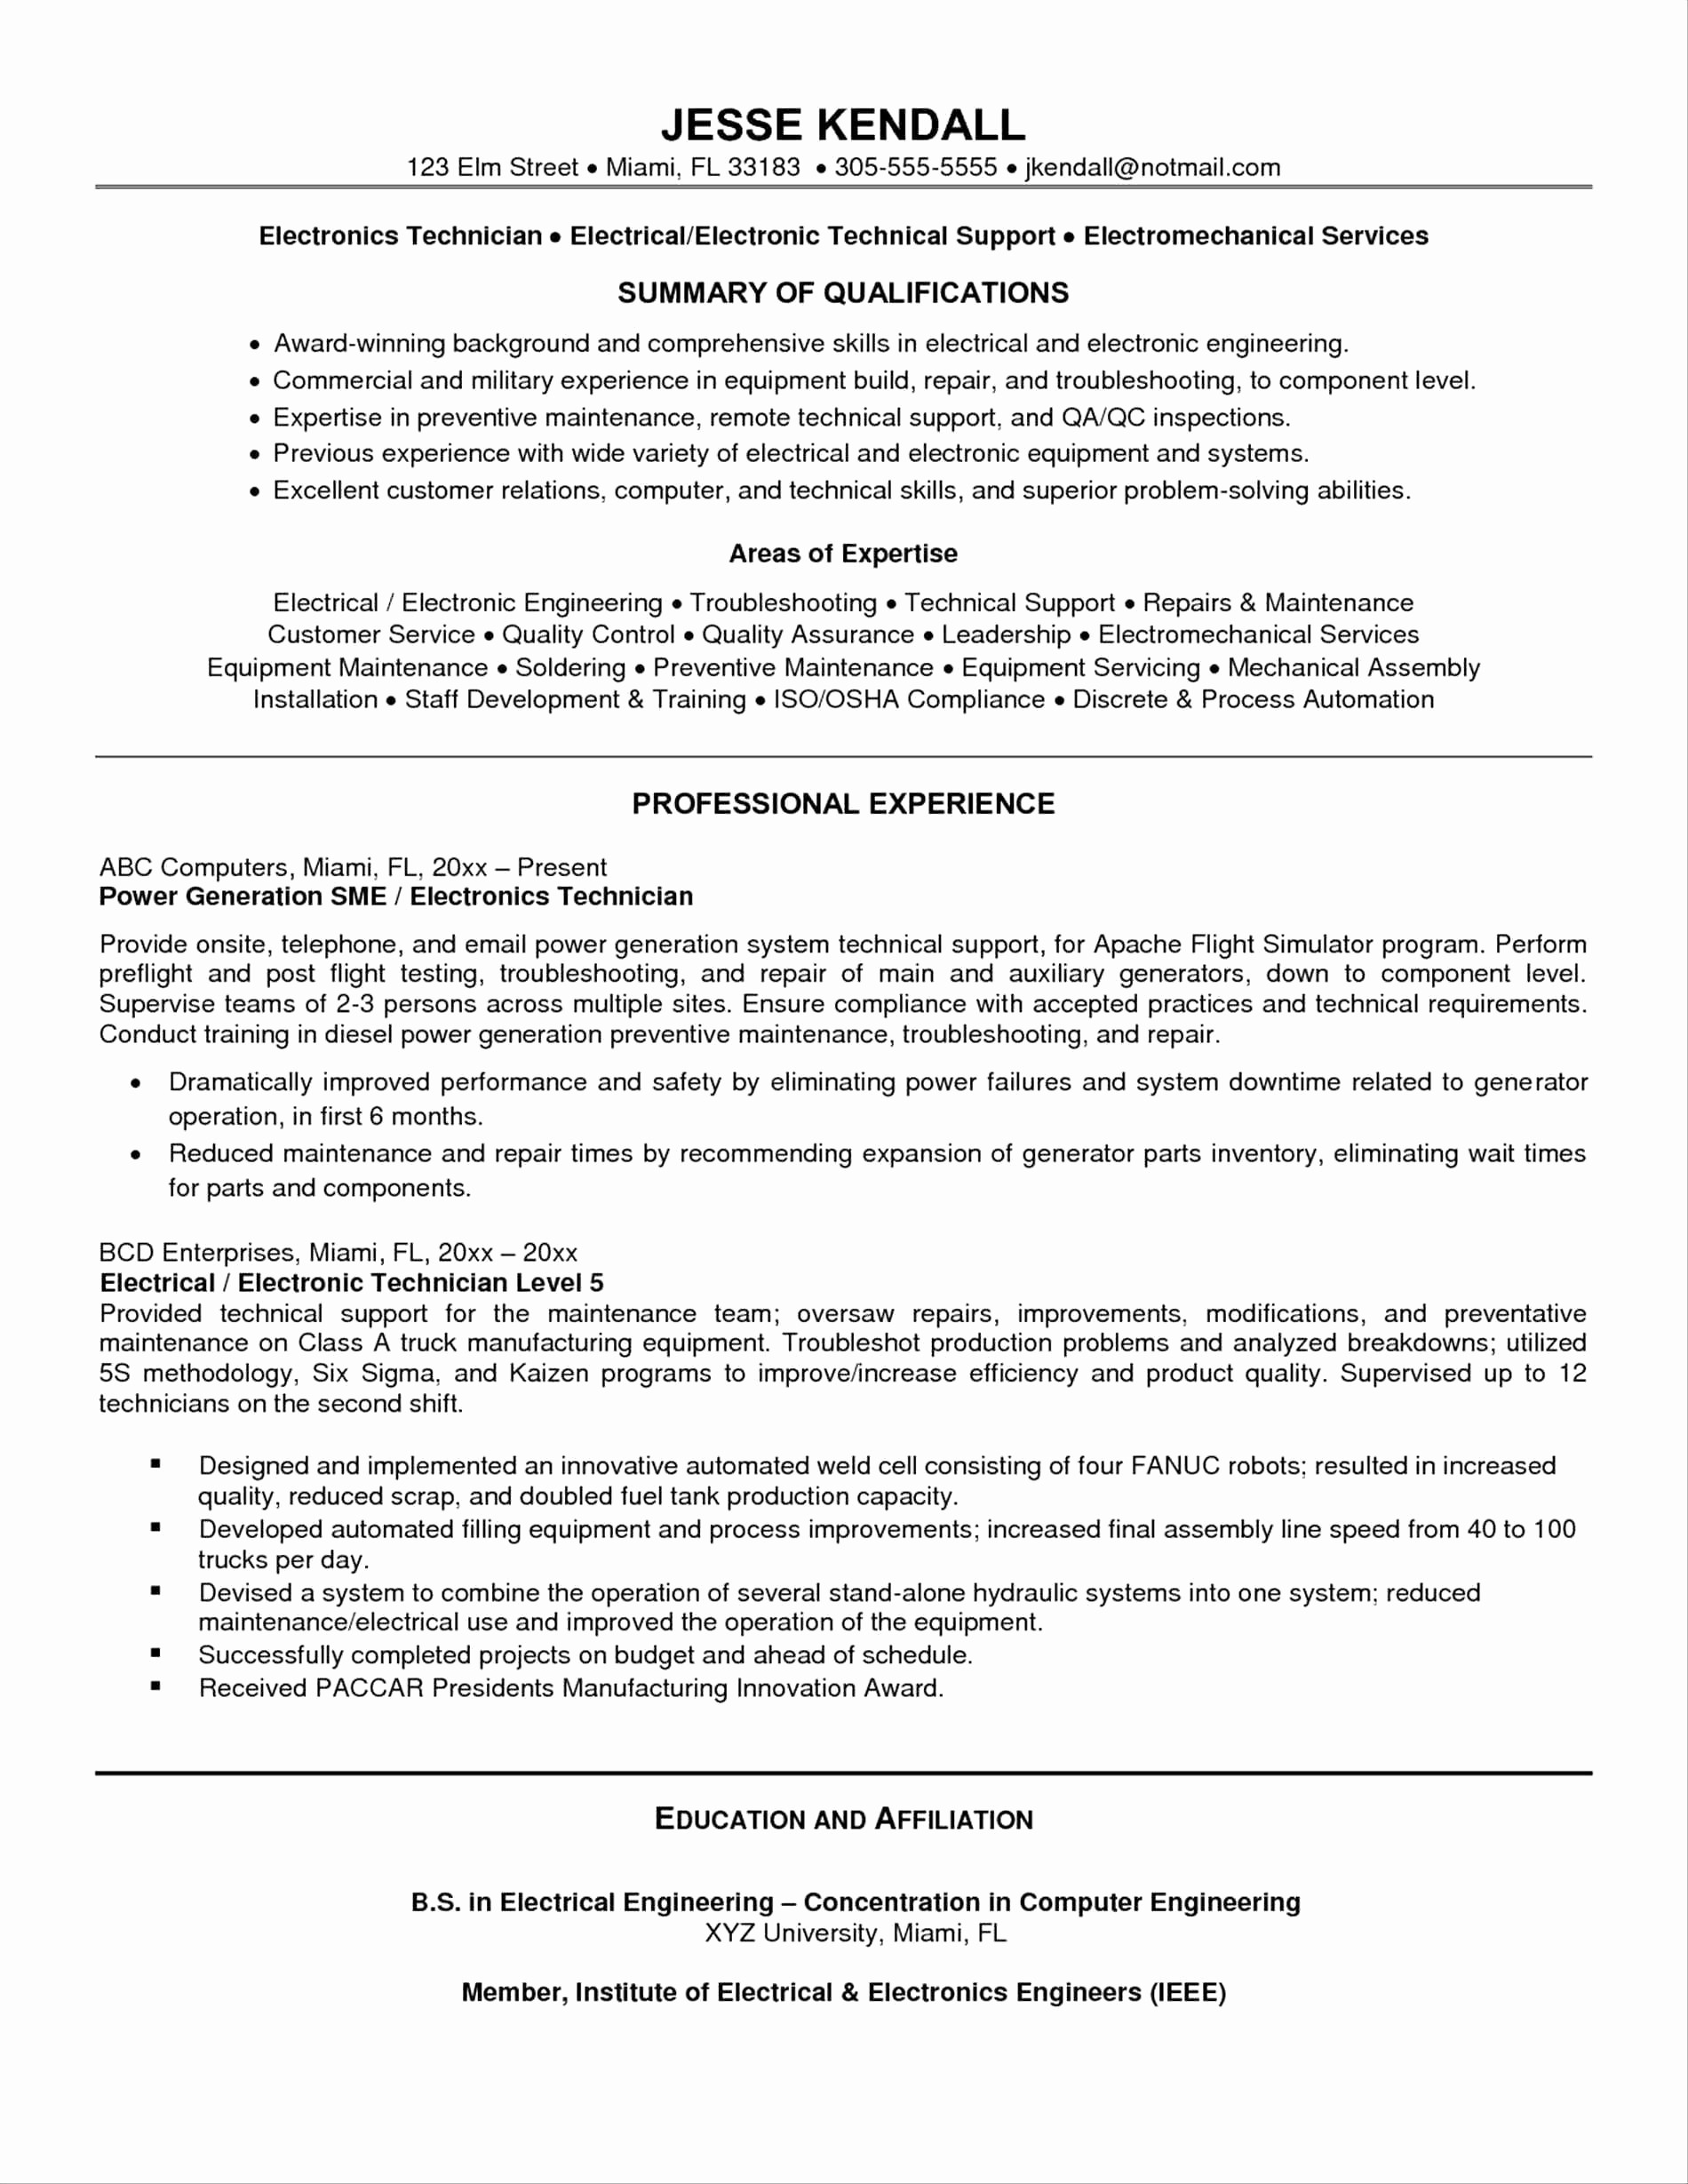 Manufacturing Skills for Resume - Pharmacy Technician Resume Skills Awesome Skills Summary for Resume